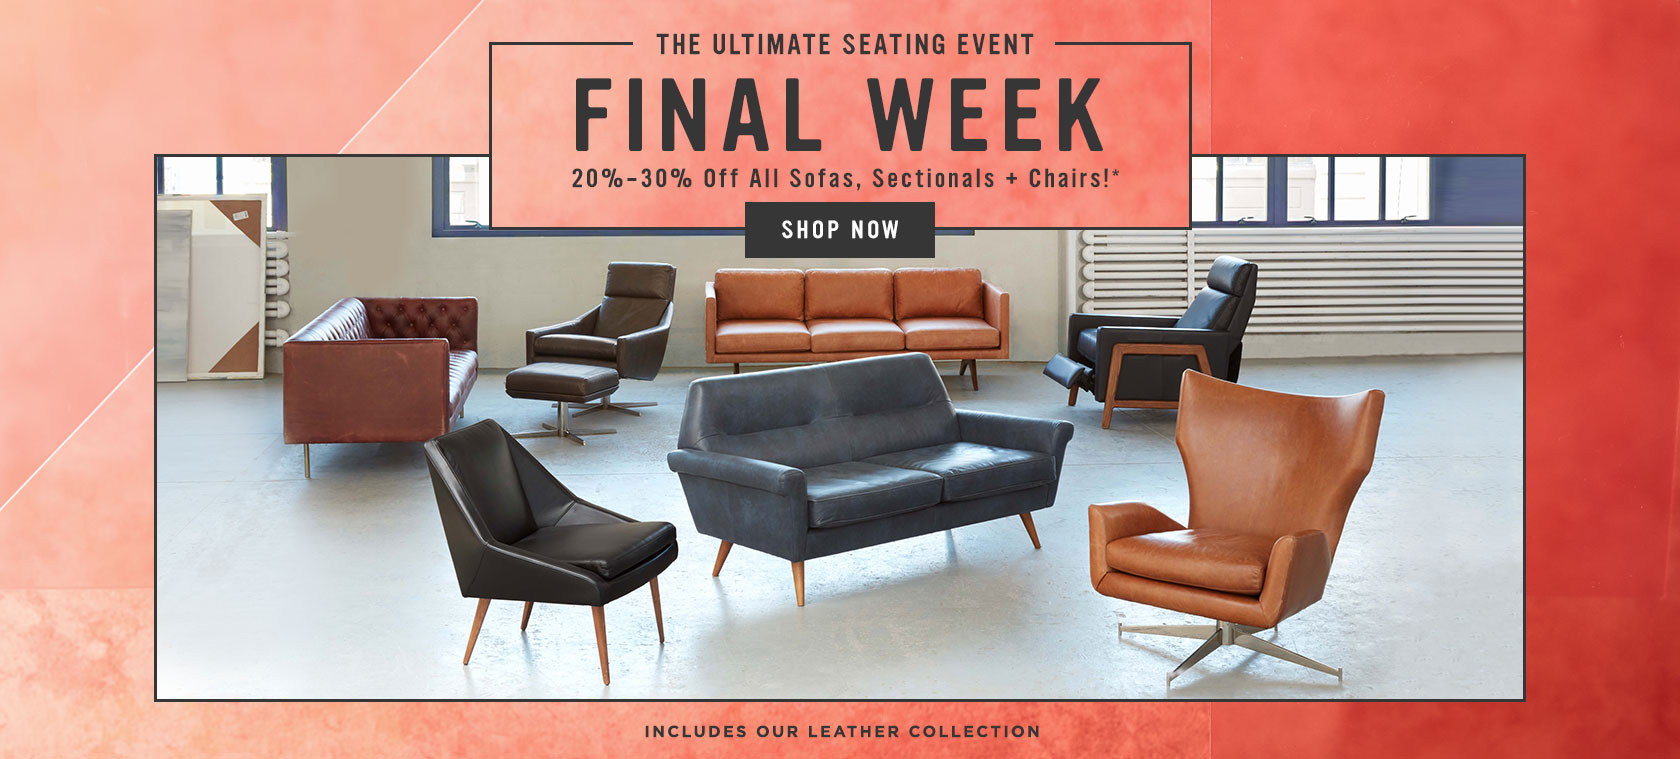 /shop/furniture/upholstered-furniture-collection/leathershop/?cm_re=hero1-_-UpholsterySale-_-LeatherCollection